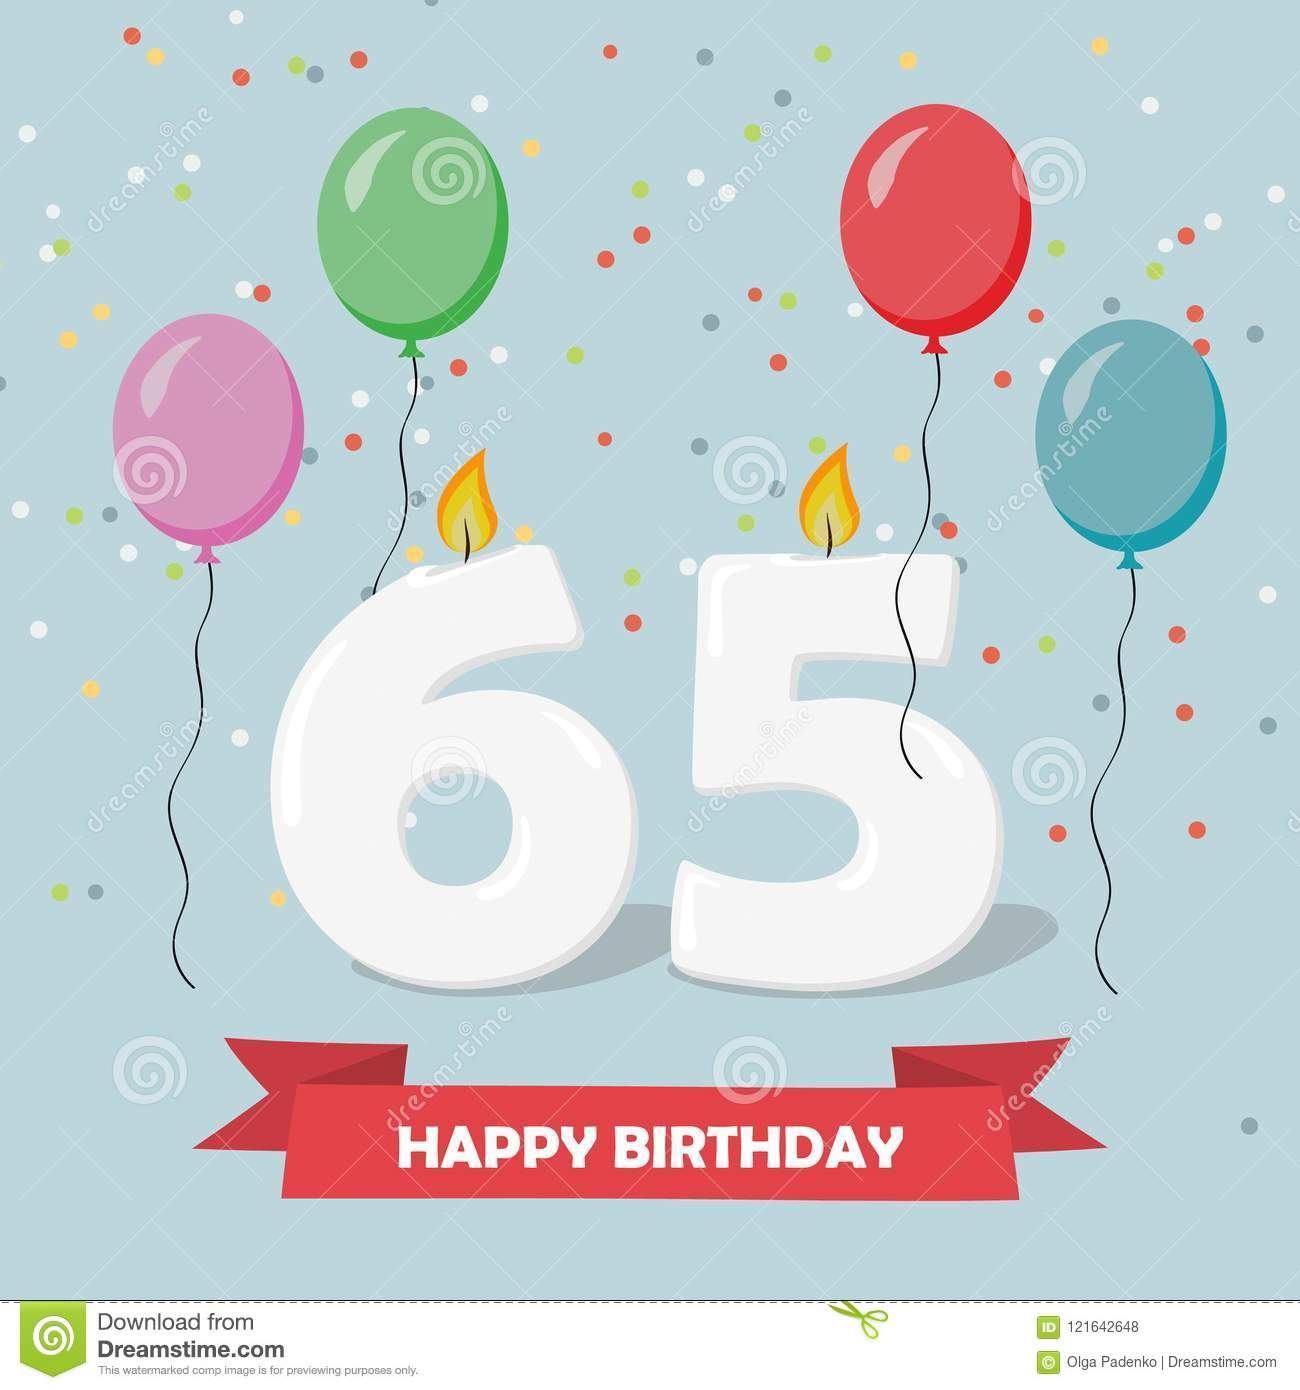 65 Years Selebration Happy Birthday Greeting Card With Candles Confetti And Balloons